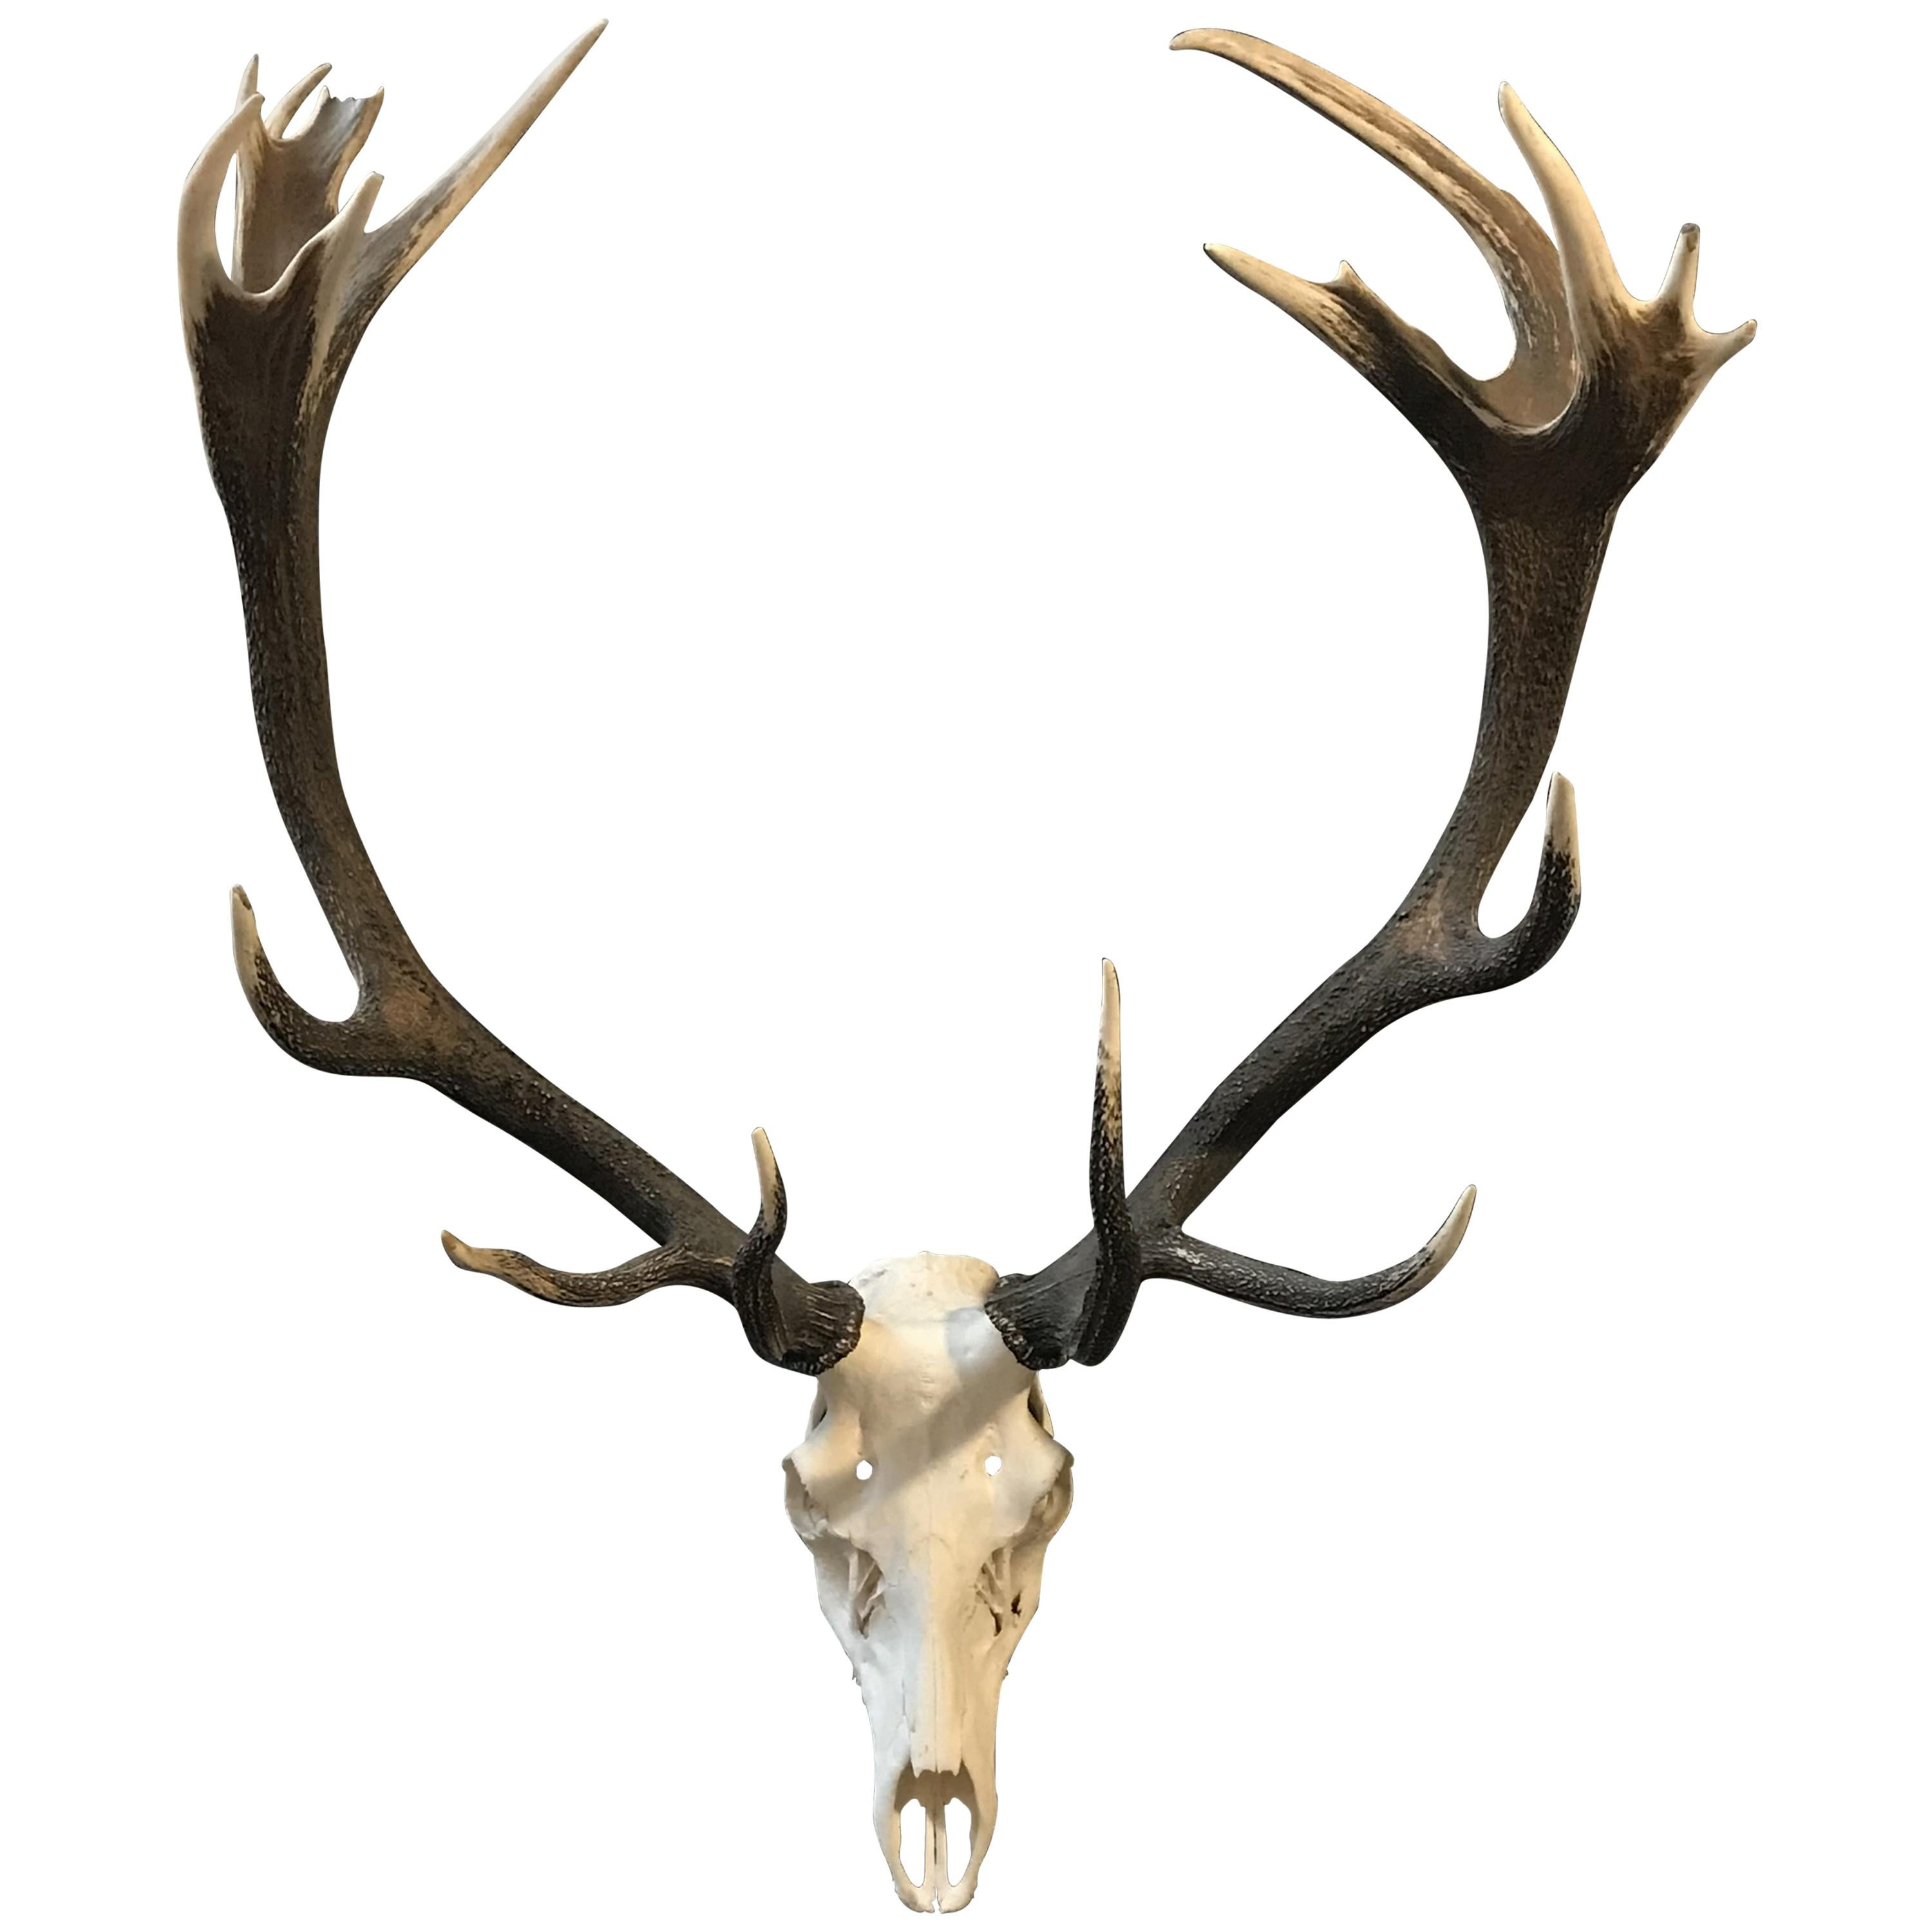 Other Antique Decorative Arts Antique Deer Antlers With Beautiful Patina.